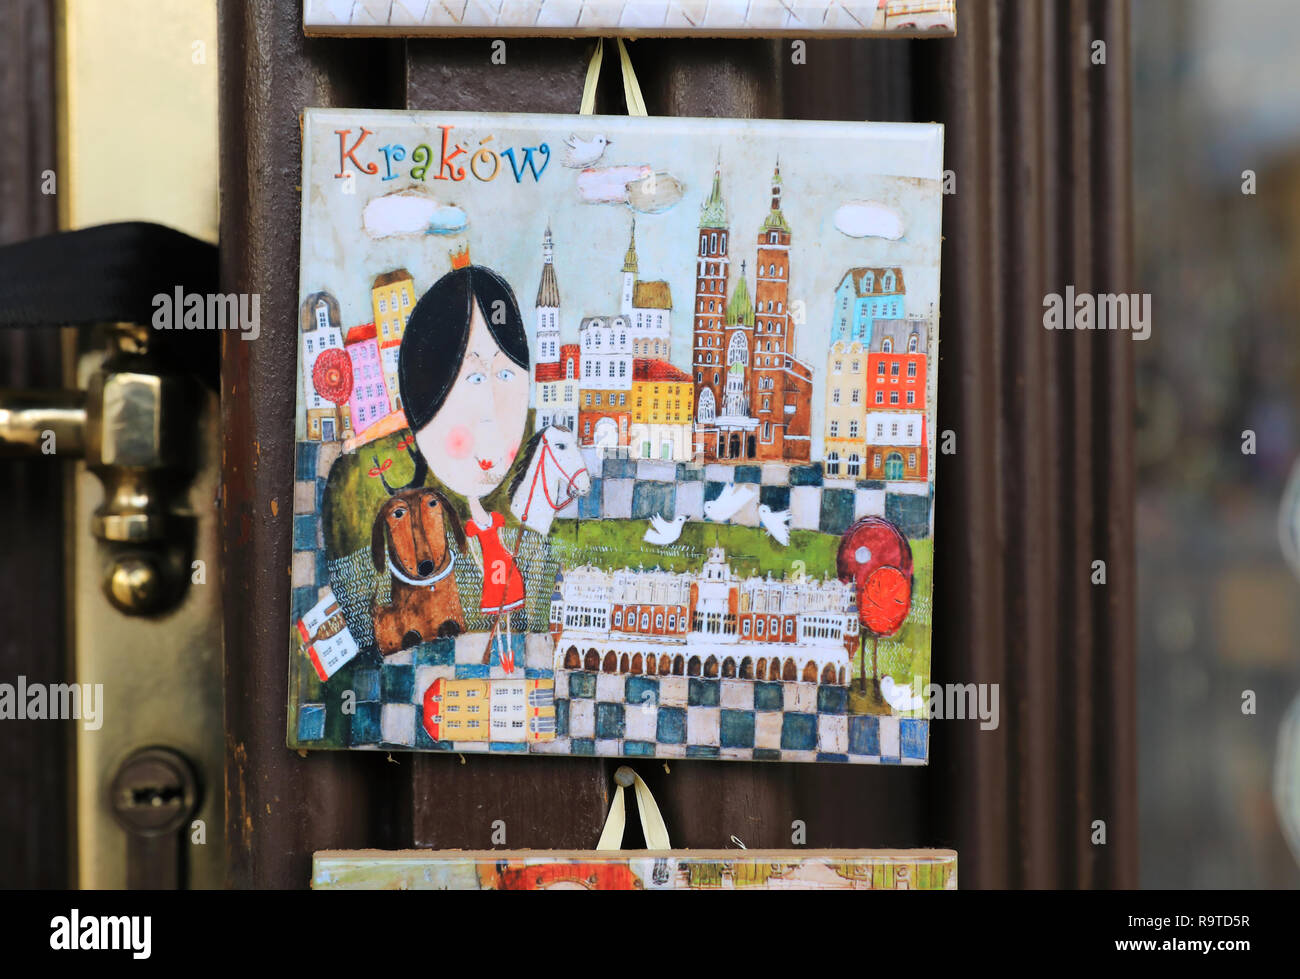 https www alamy com pretty local ceramic tiles for sale on stalls on the christmas market in the main market square in the old town in krakow poland image229803891 html